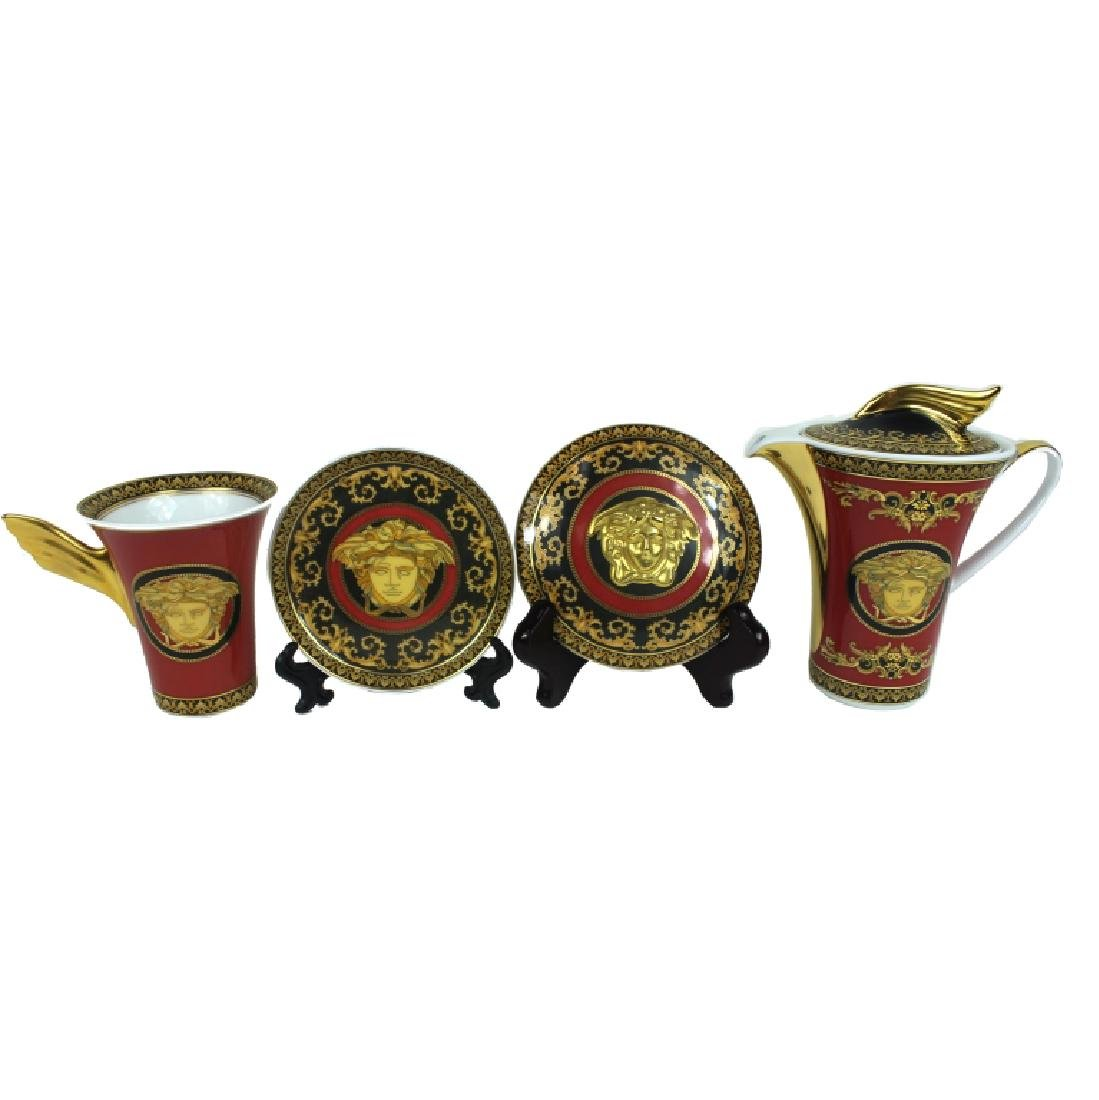 (4) FOUR ROSENTHAL VERSACE MUDUSA SERVING ITEMS